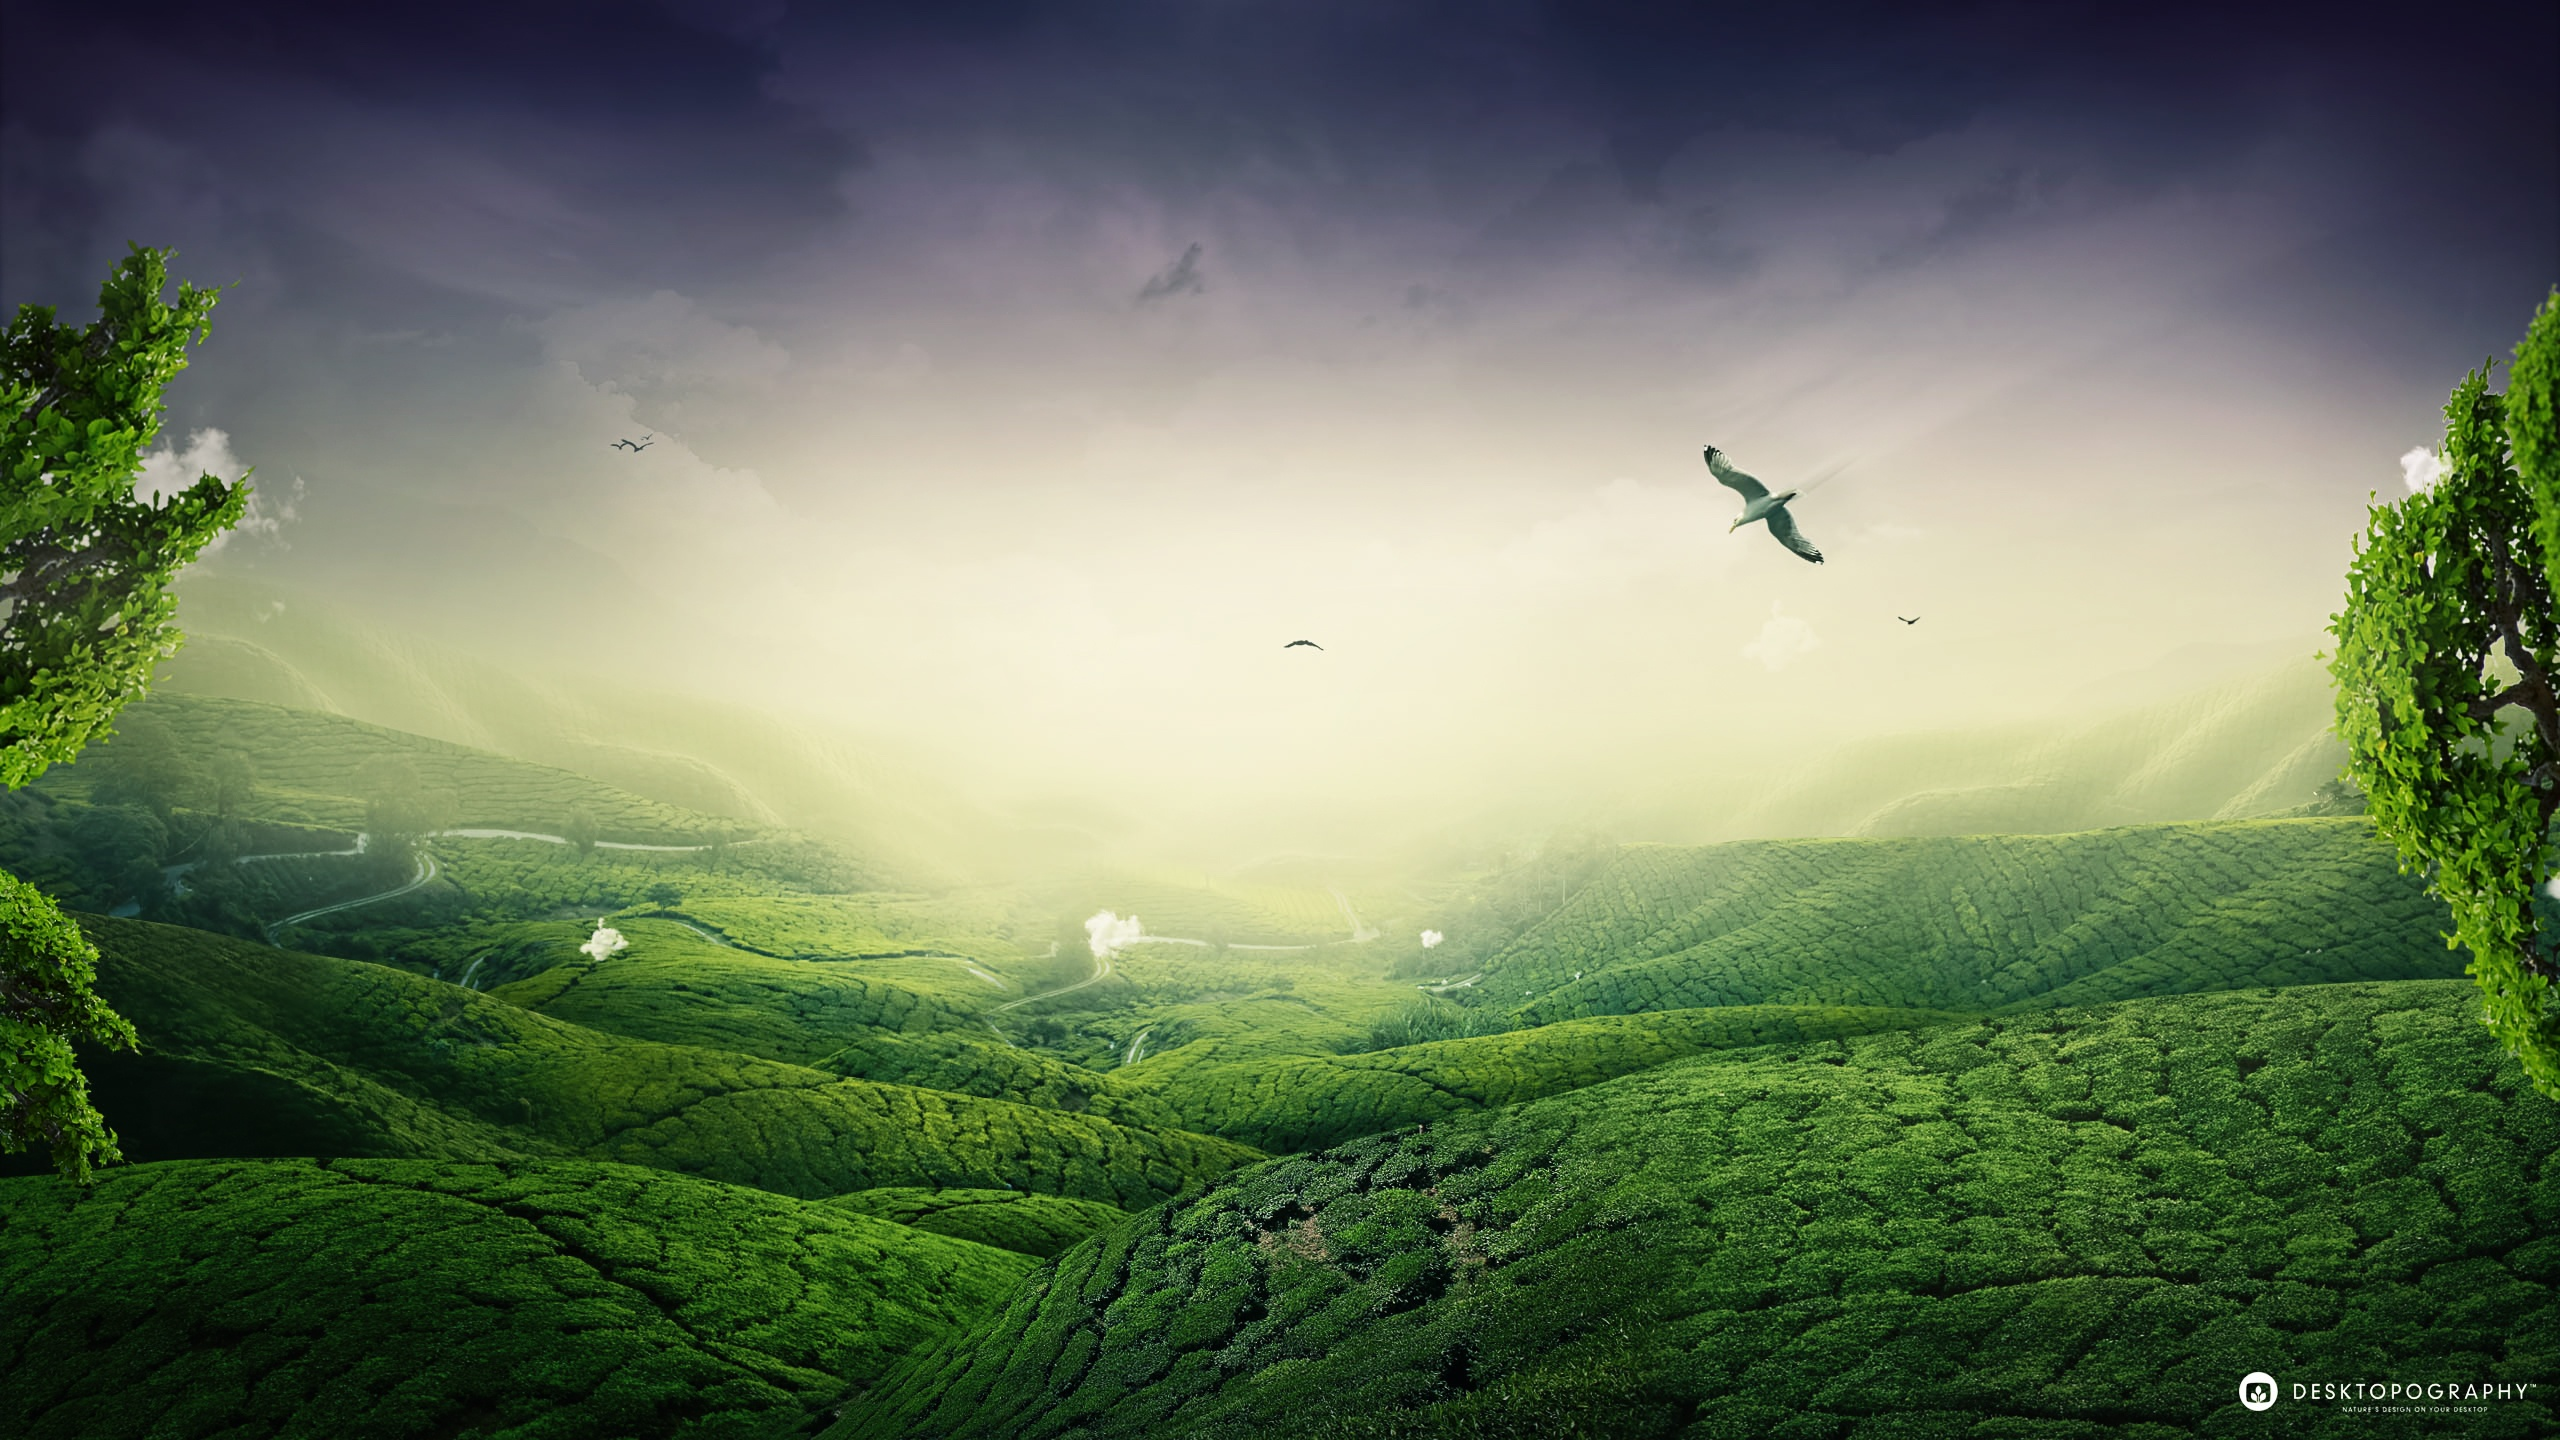 green landscape wallpapers in jpg format for free download